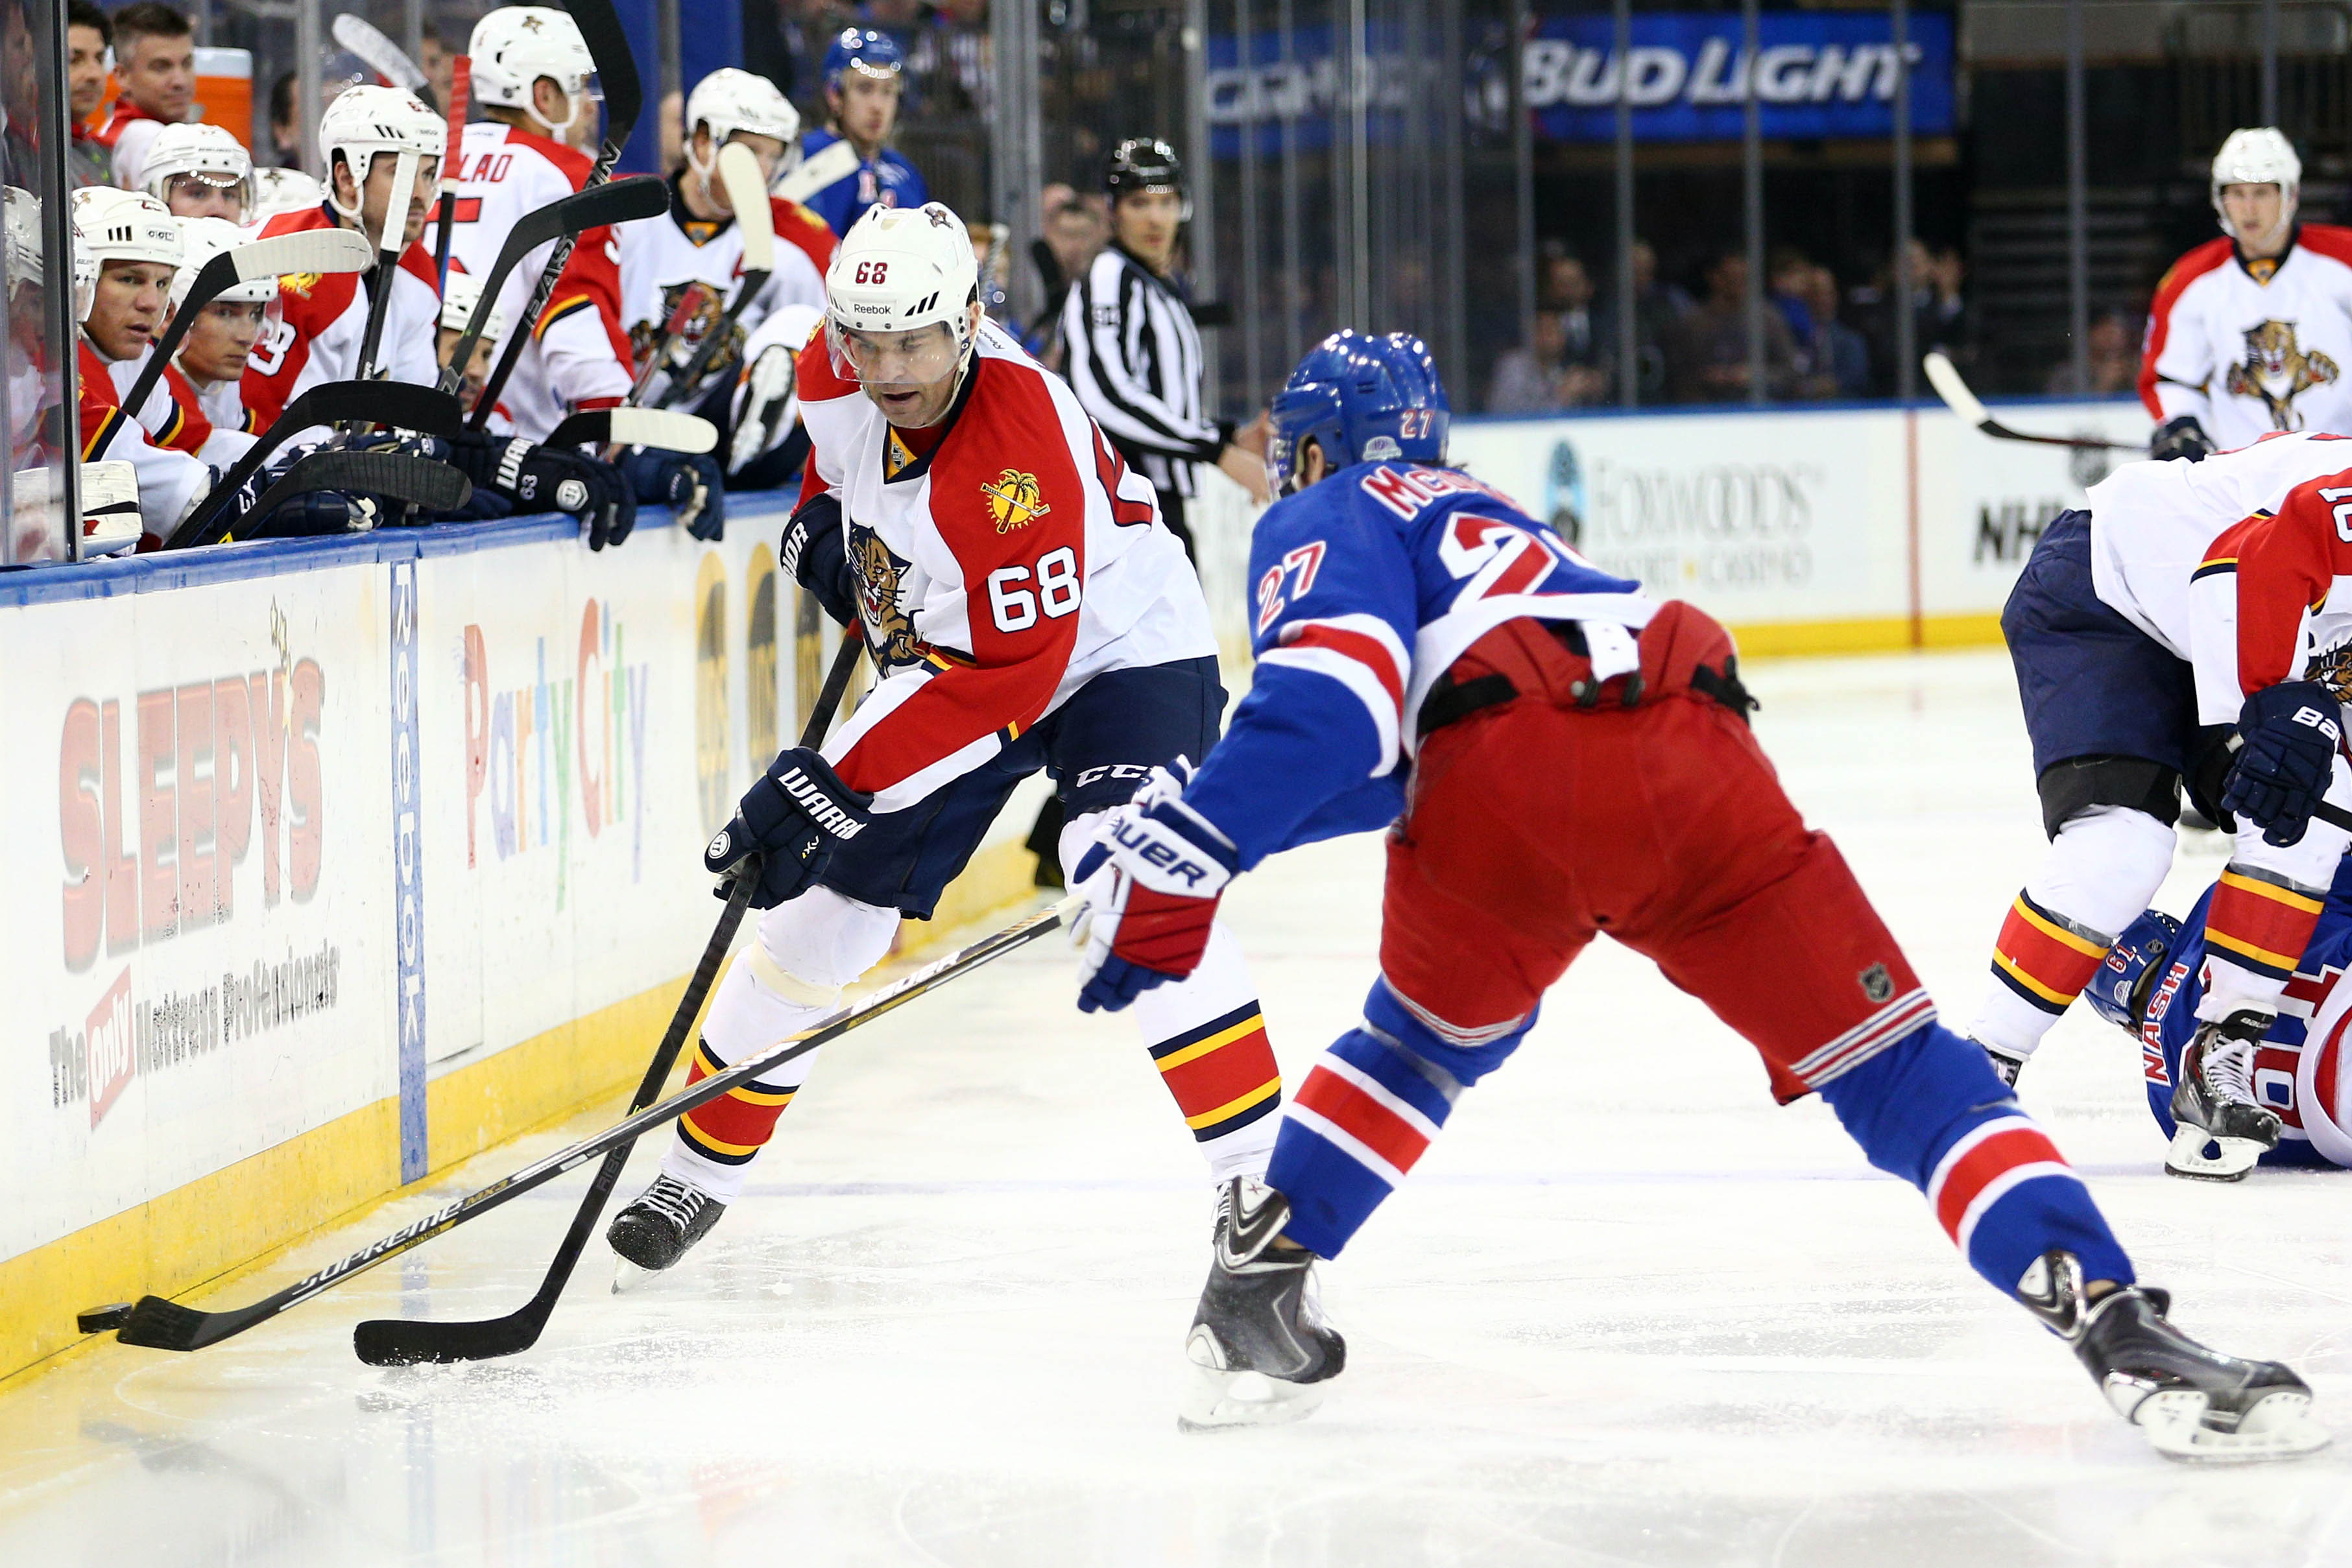 Preview Rangers Visit Jagr and Panthers